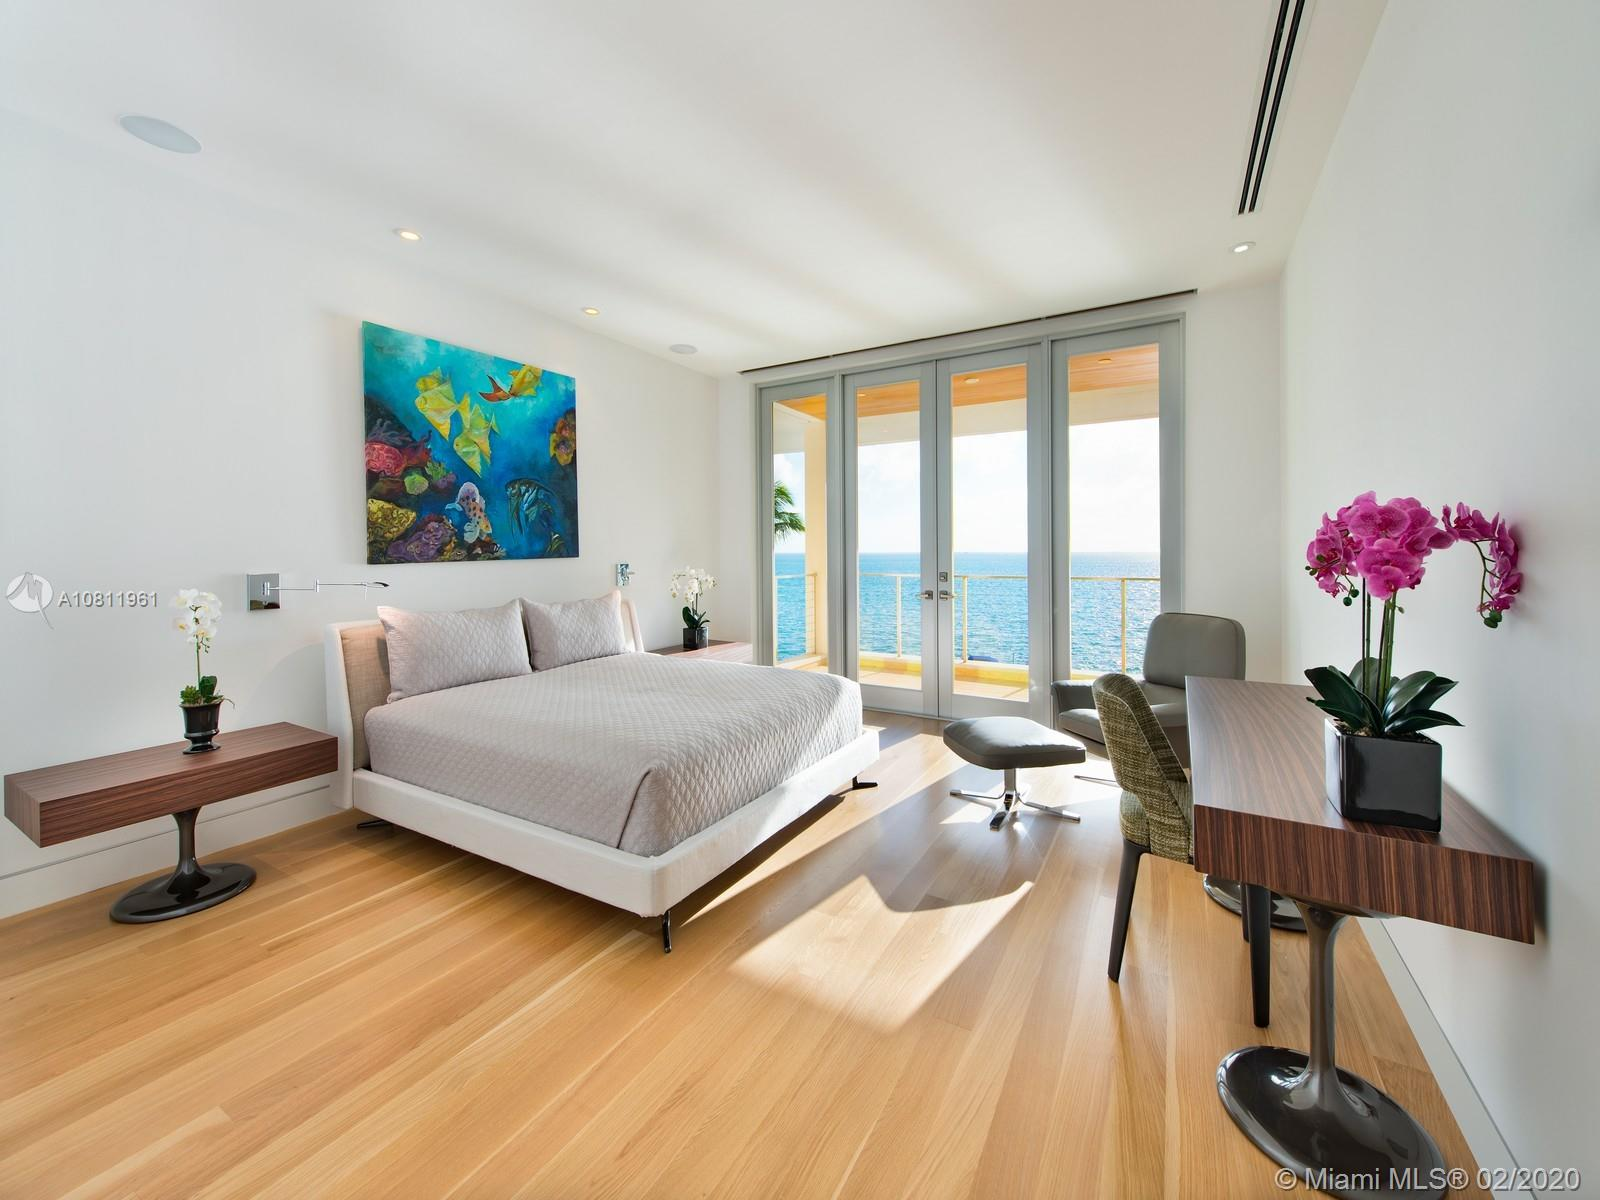 Third floor bedroom with outdoor terrace and direct ocean views.